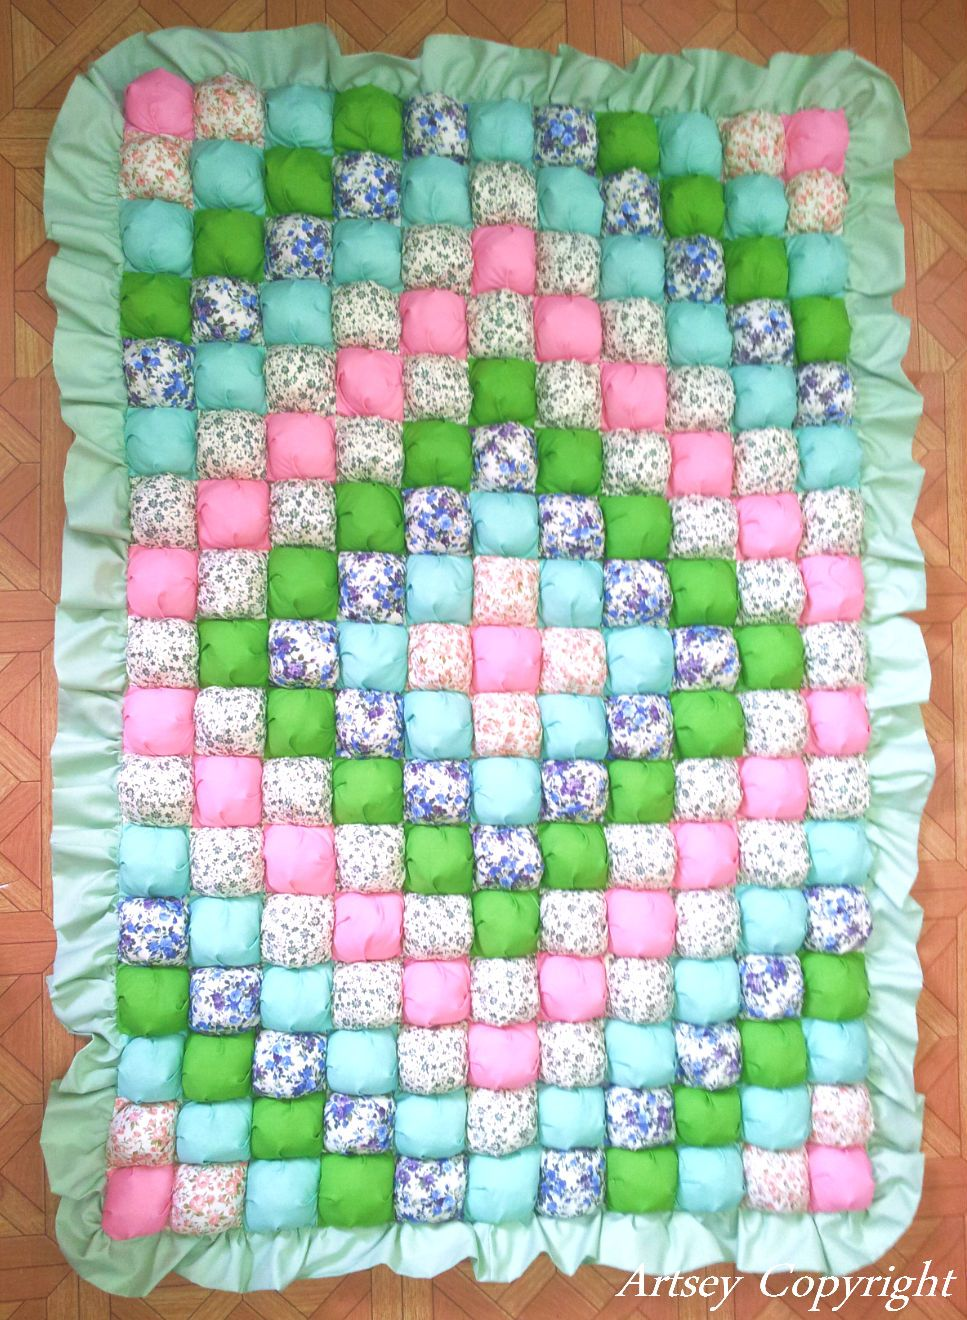 My latest biscuit quilt / bubble quilt / puff quilt | Bubble quilt ... : baby puff quilt - Adamdwight.com